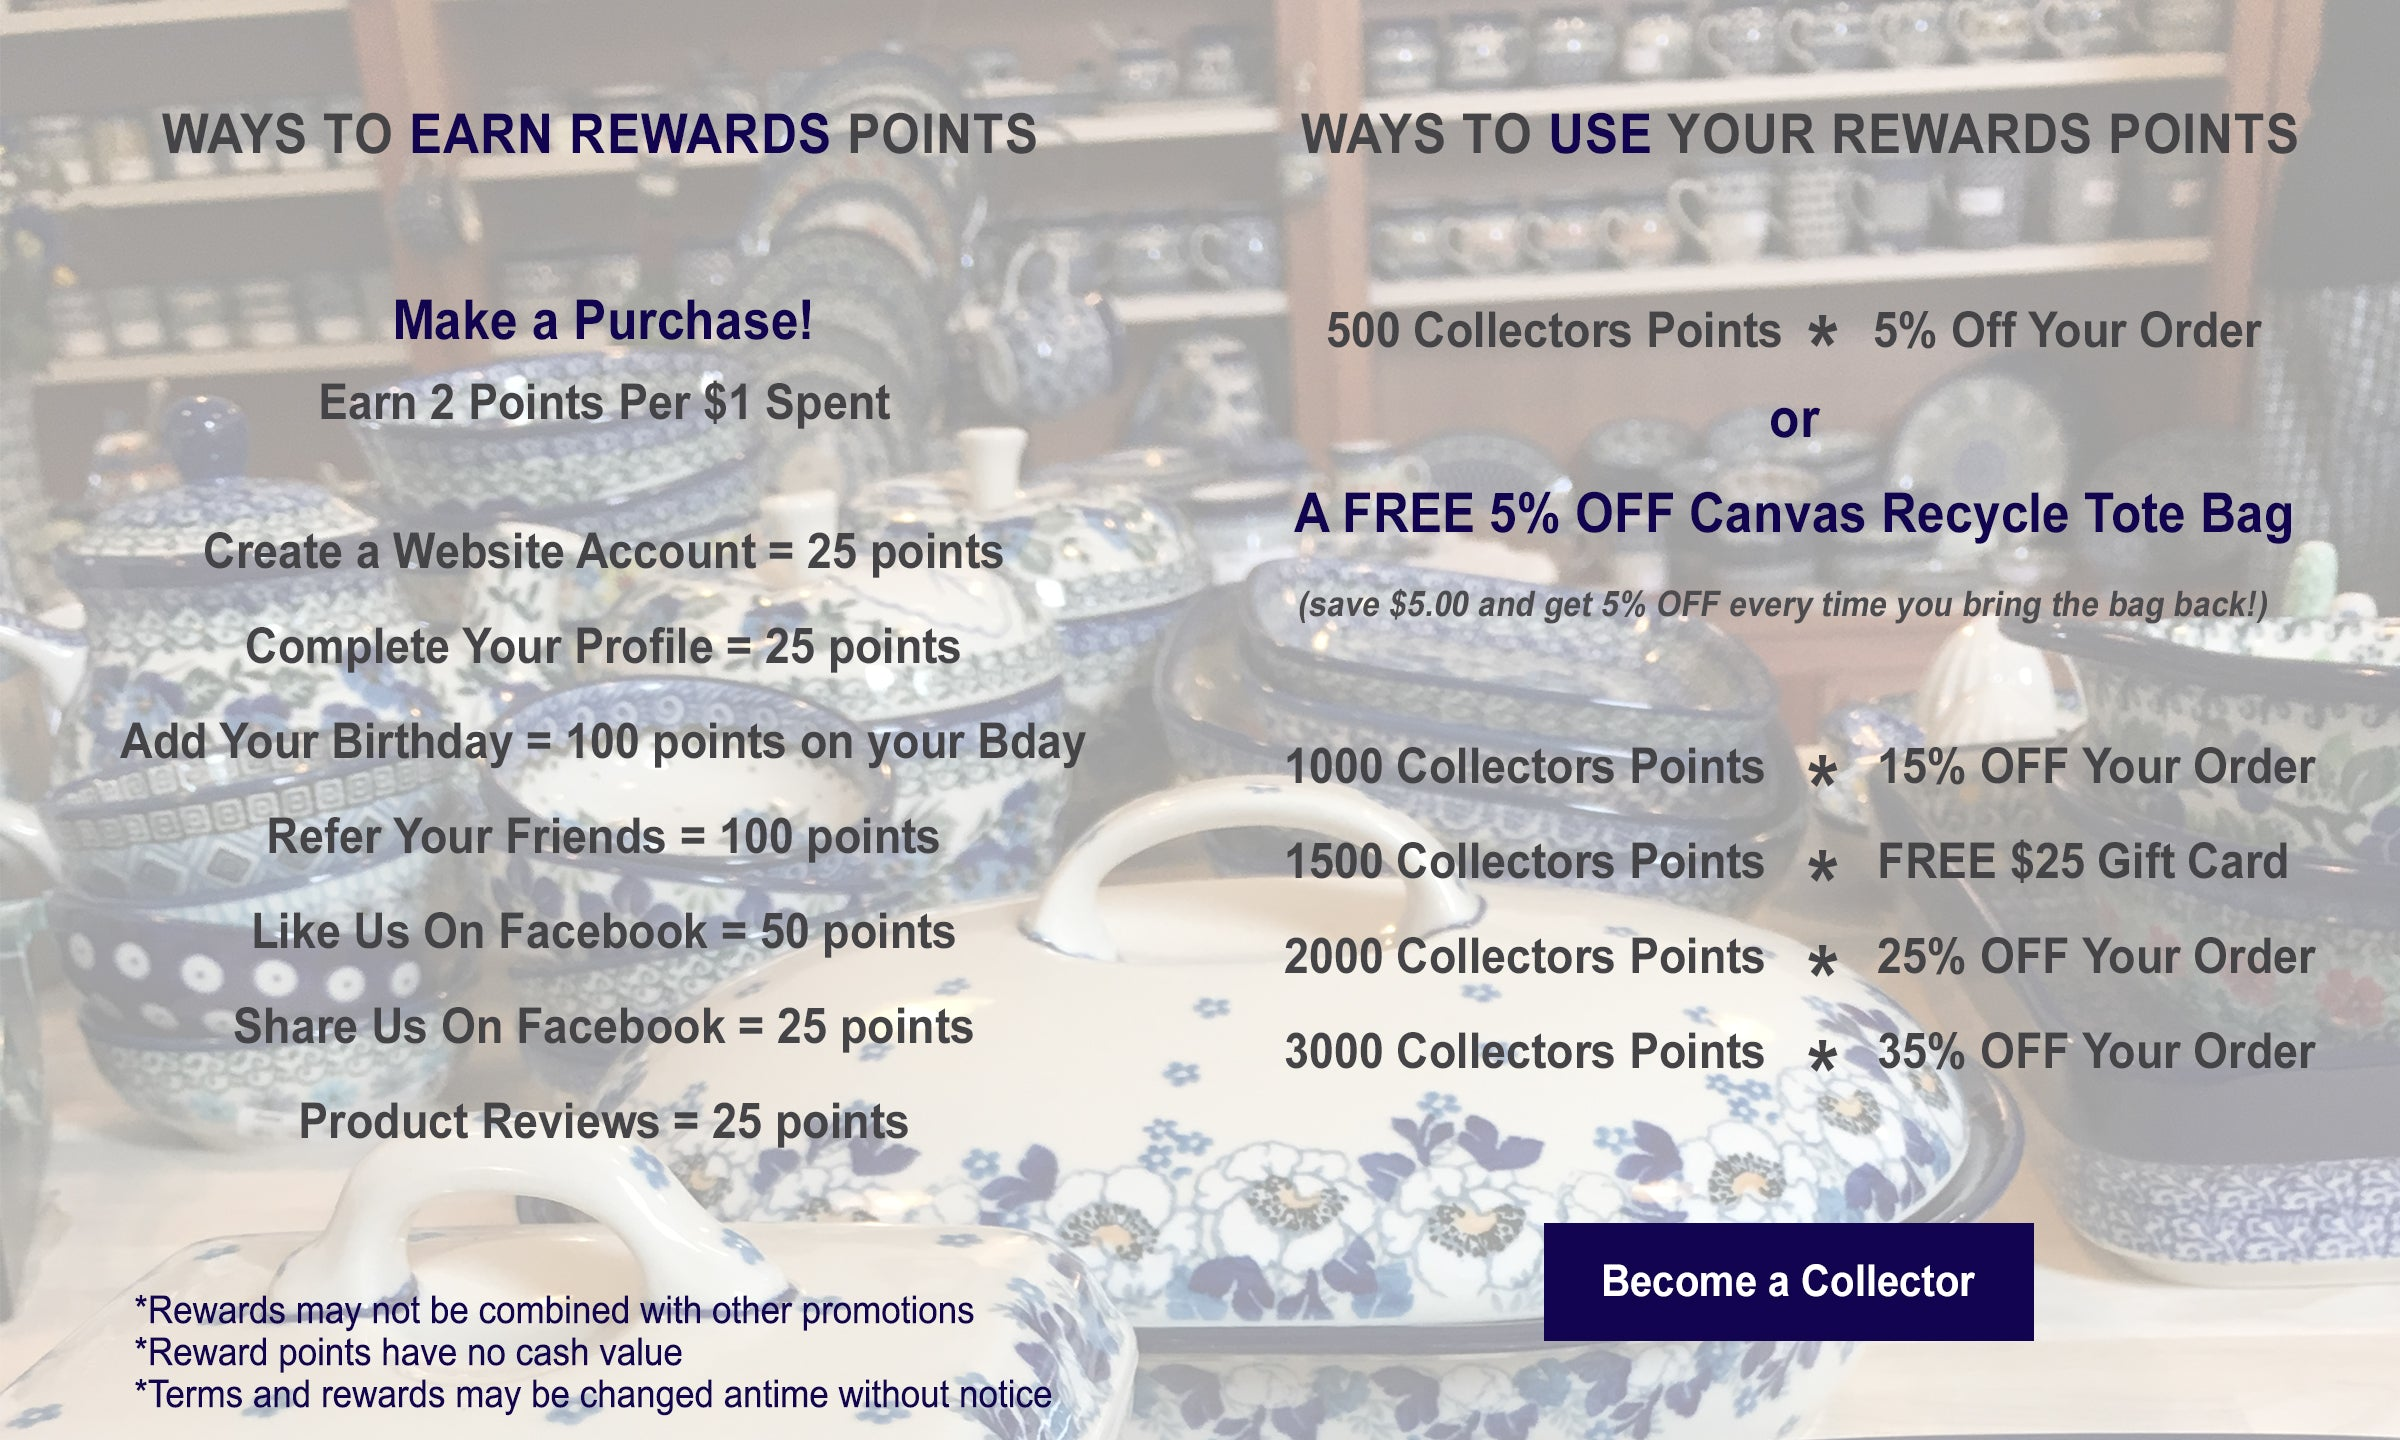 How to earn and use Great2bHome Polish Pottery reward points